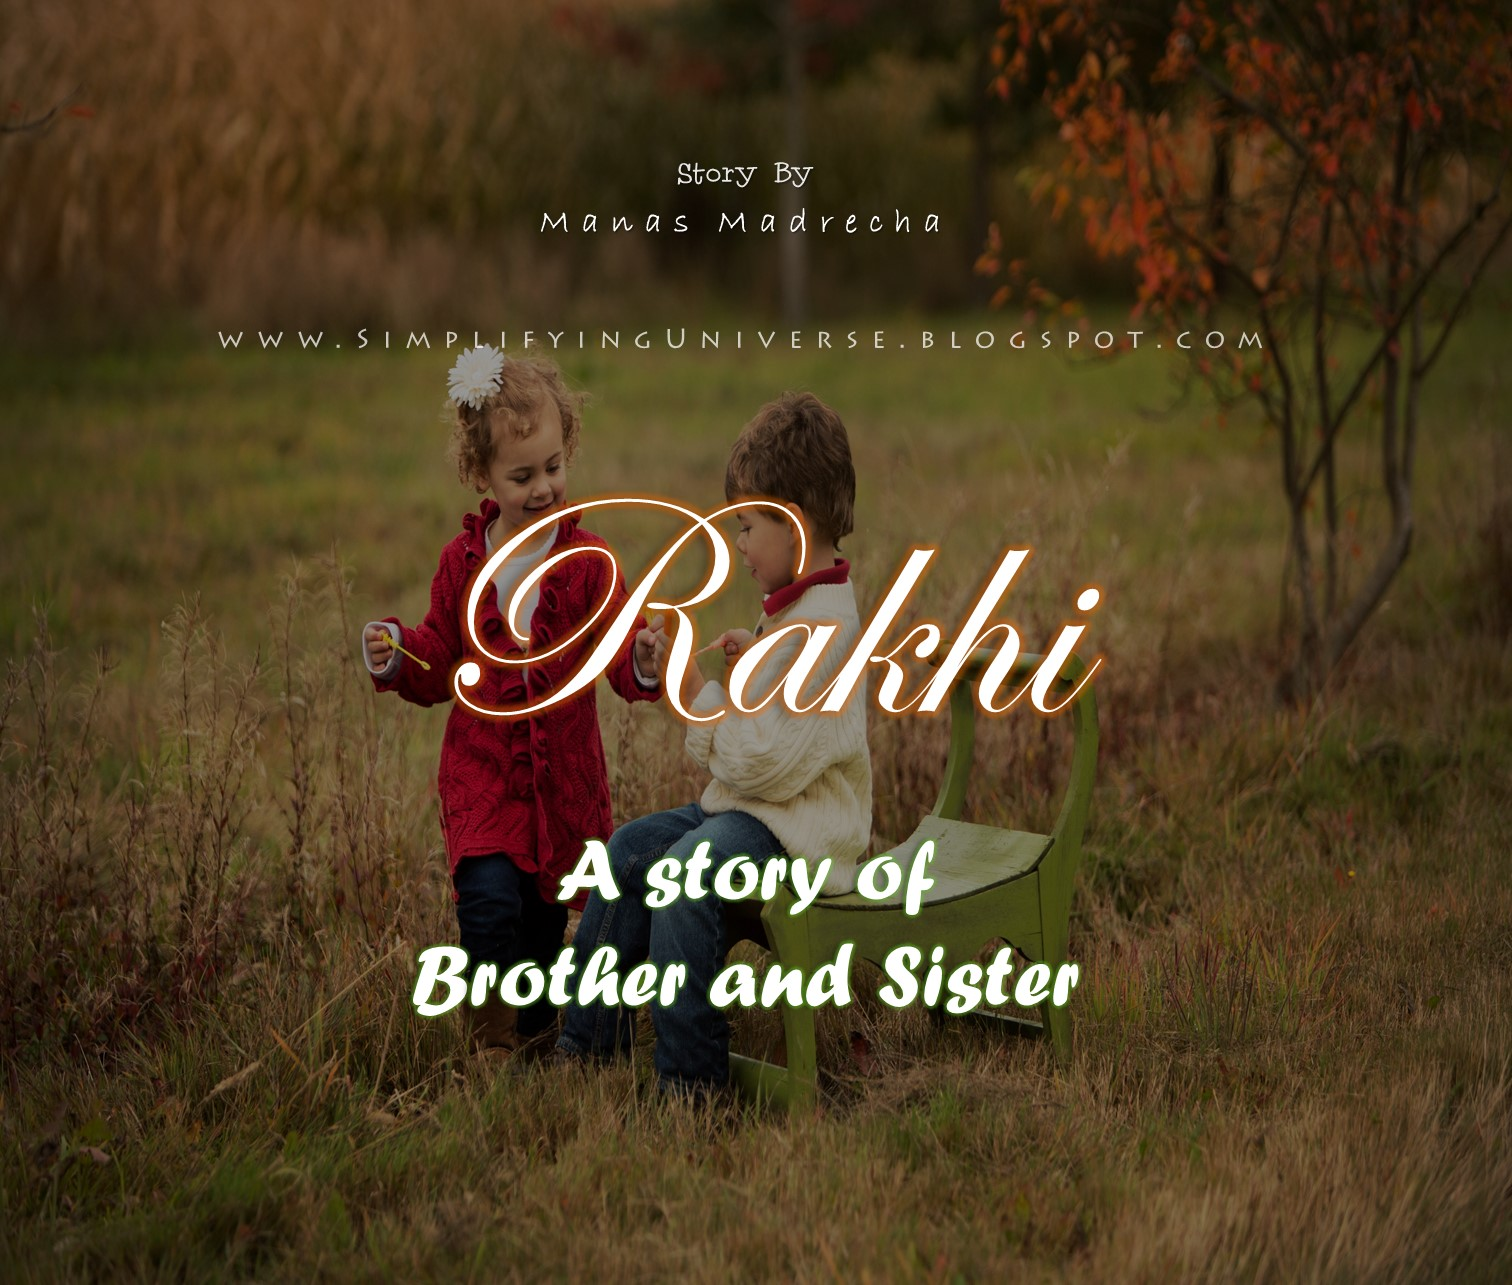 Brother And Sister Love Quotes Adorable Rakhi  A Story Of Brother And Sister  Manas Madrecha